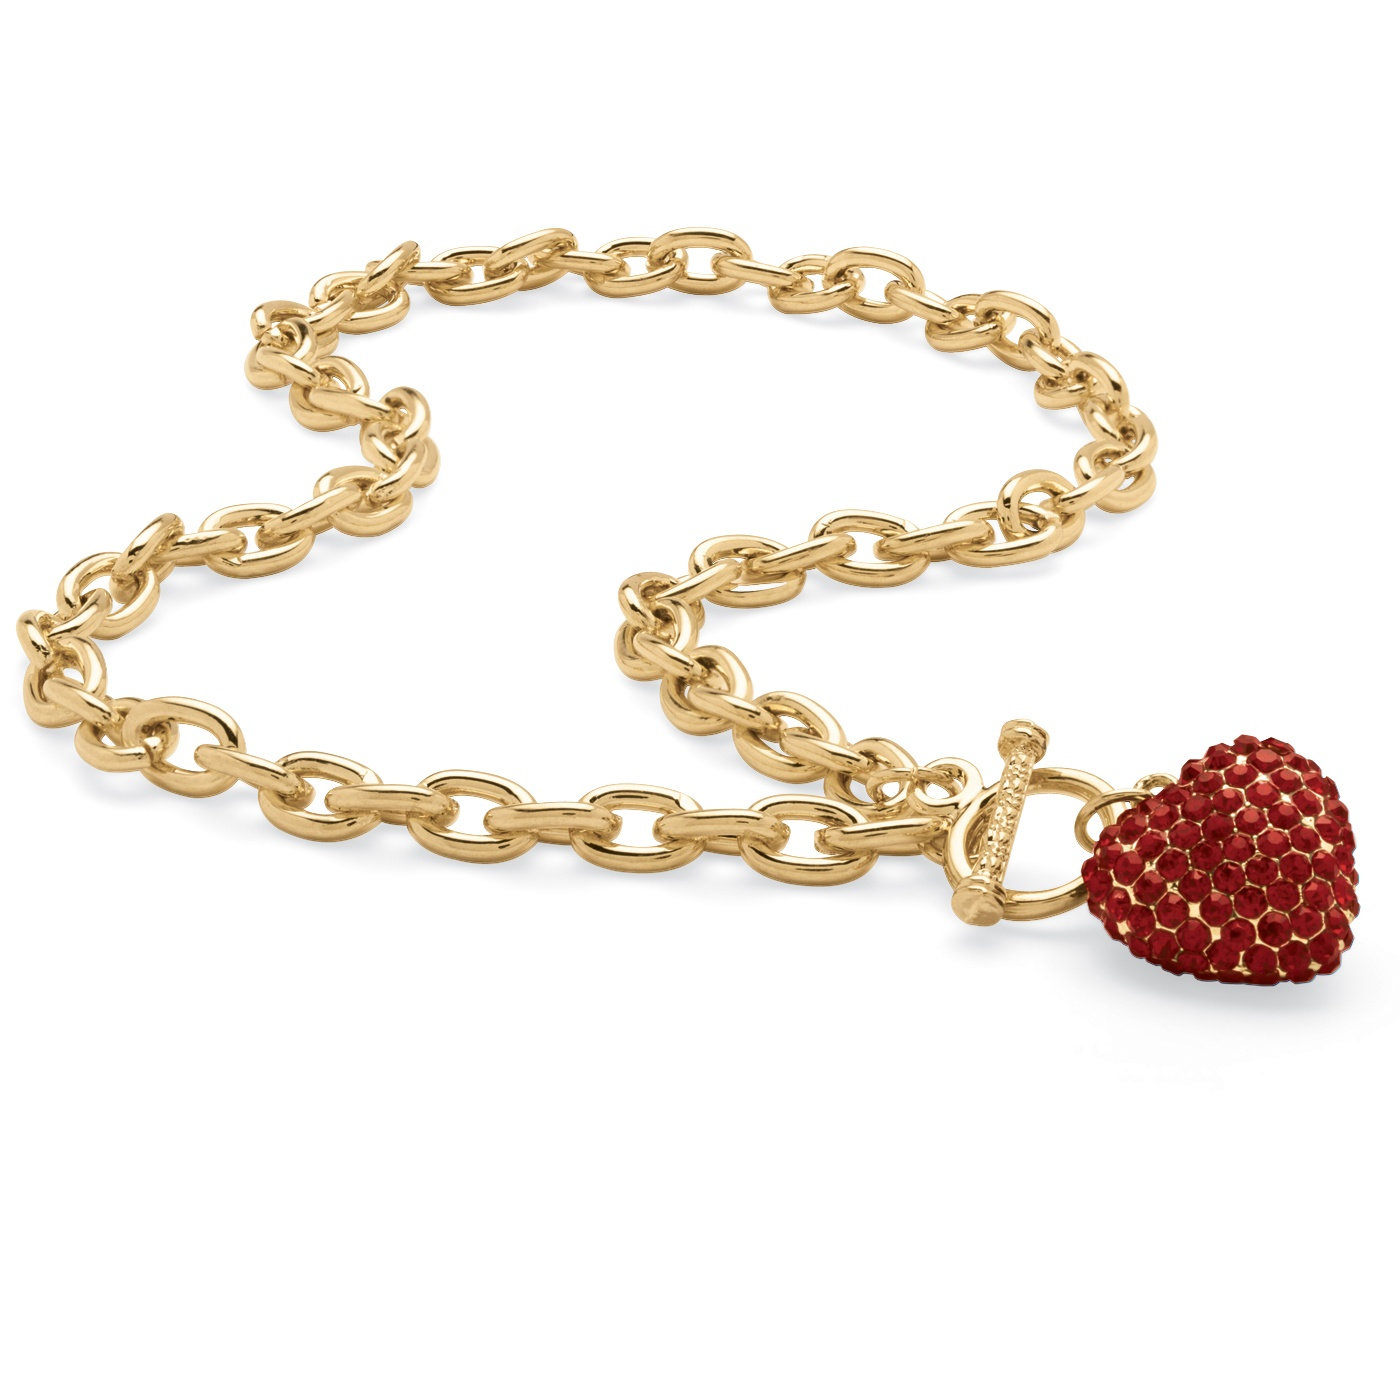 Crystal Heart Charm Birthstone Toggle Necklace in Yellow Gold Tone - January- Simulated Garnet